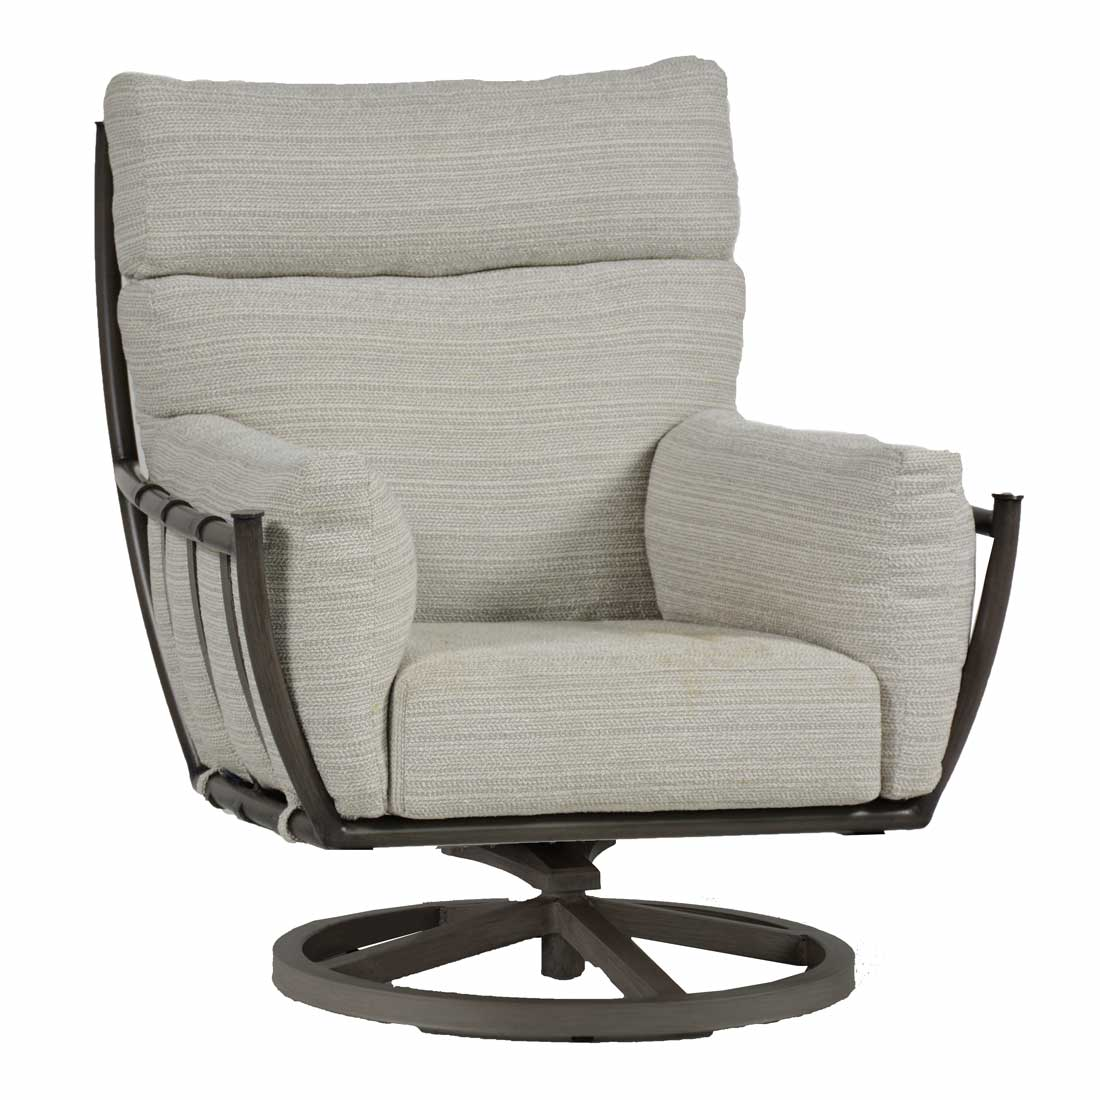 Majorca Swivel Rocker Lounge